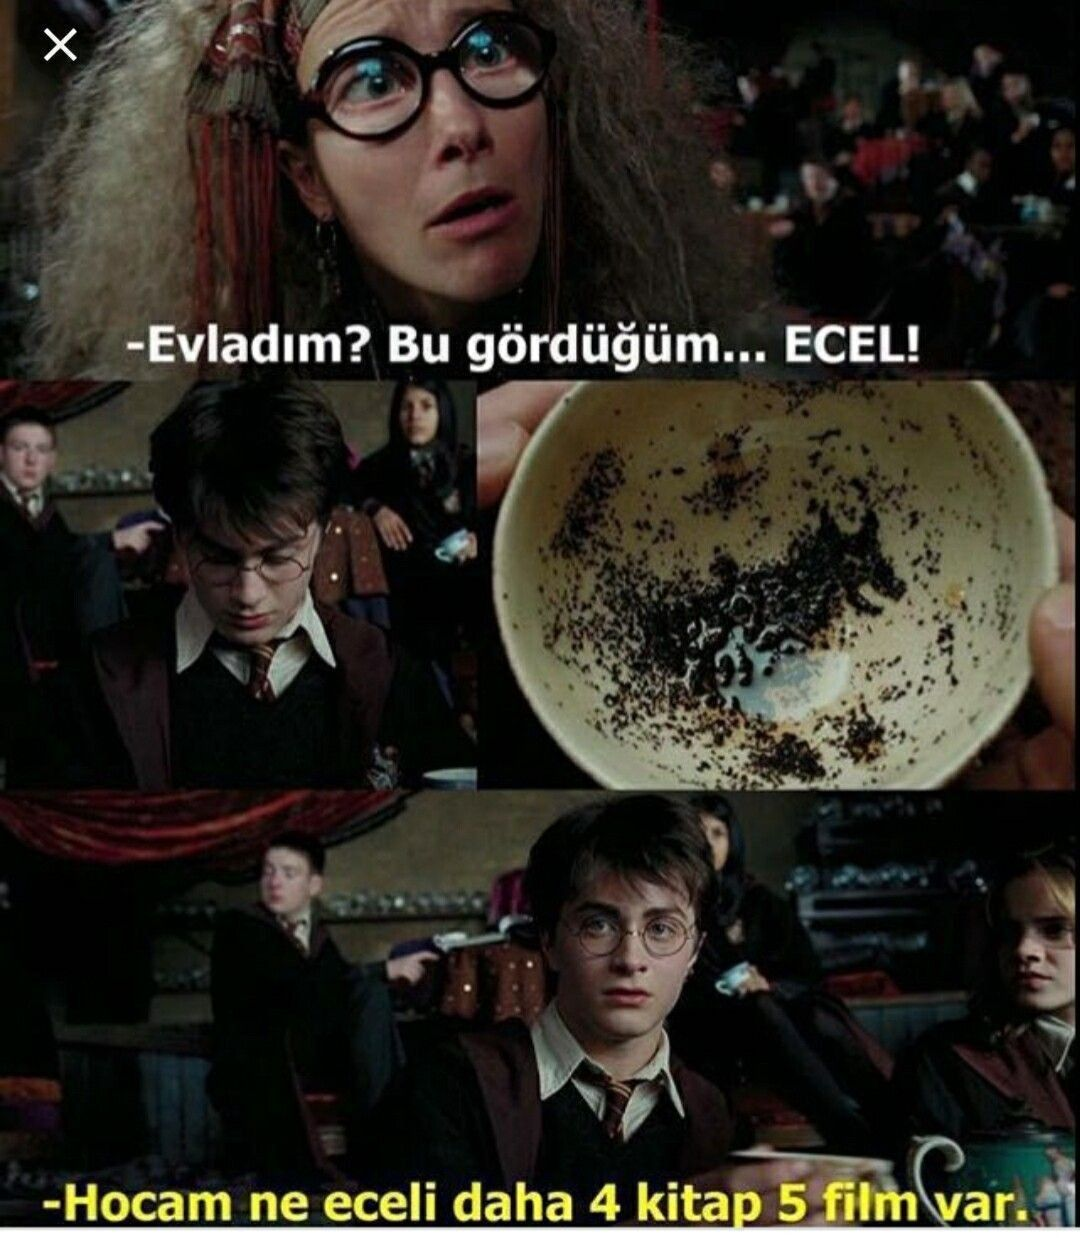 Harry Potter Capsleri   - 35.Caps》Ecel